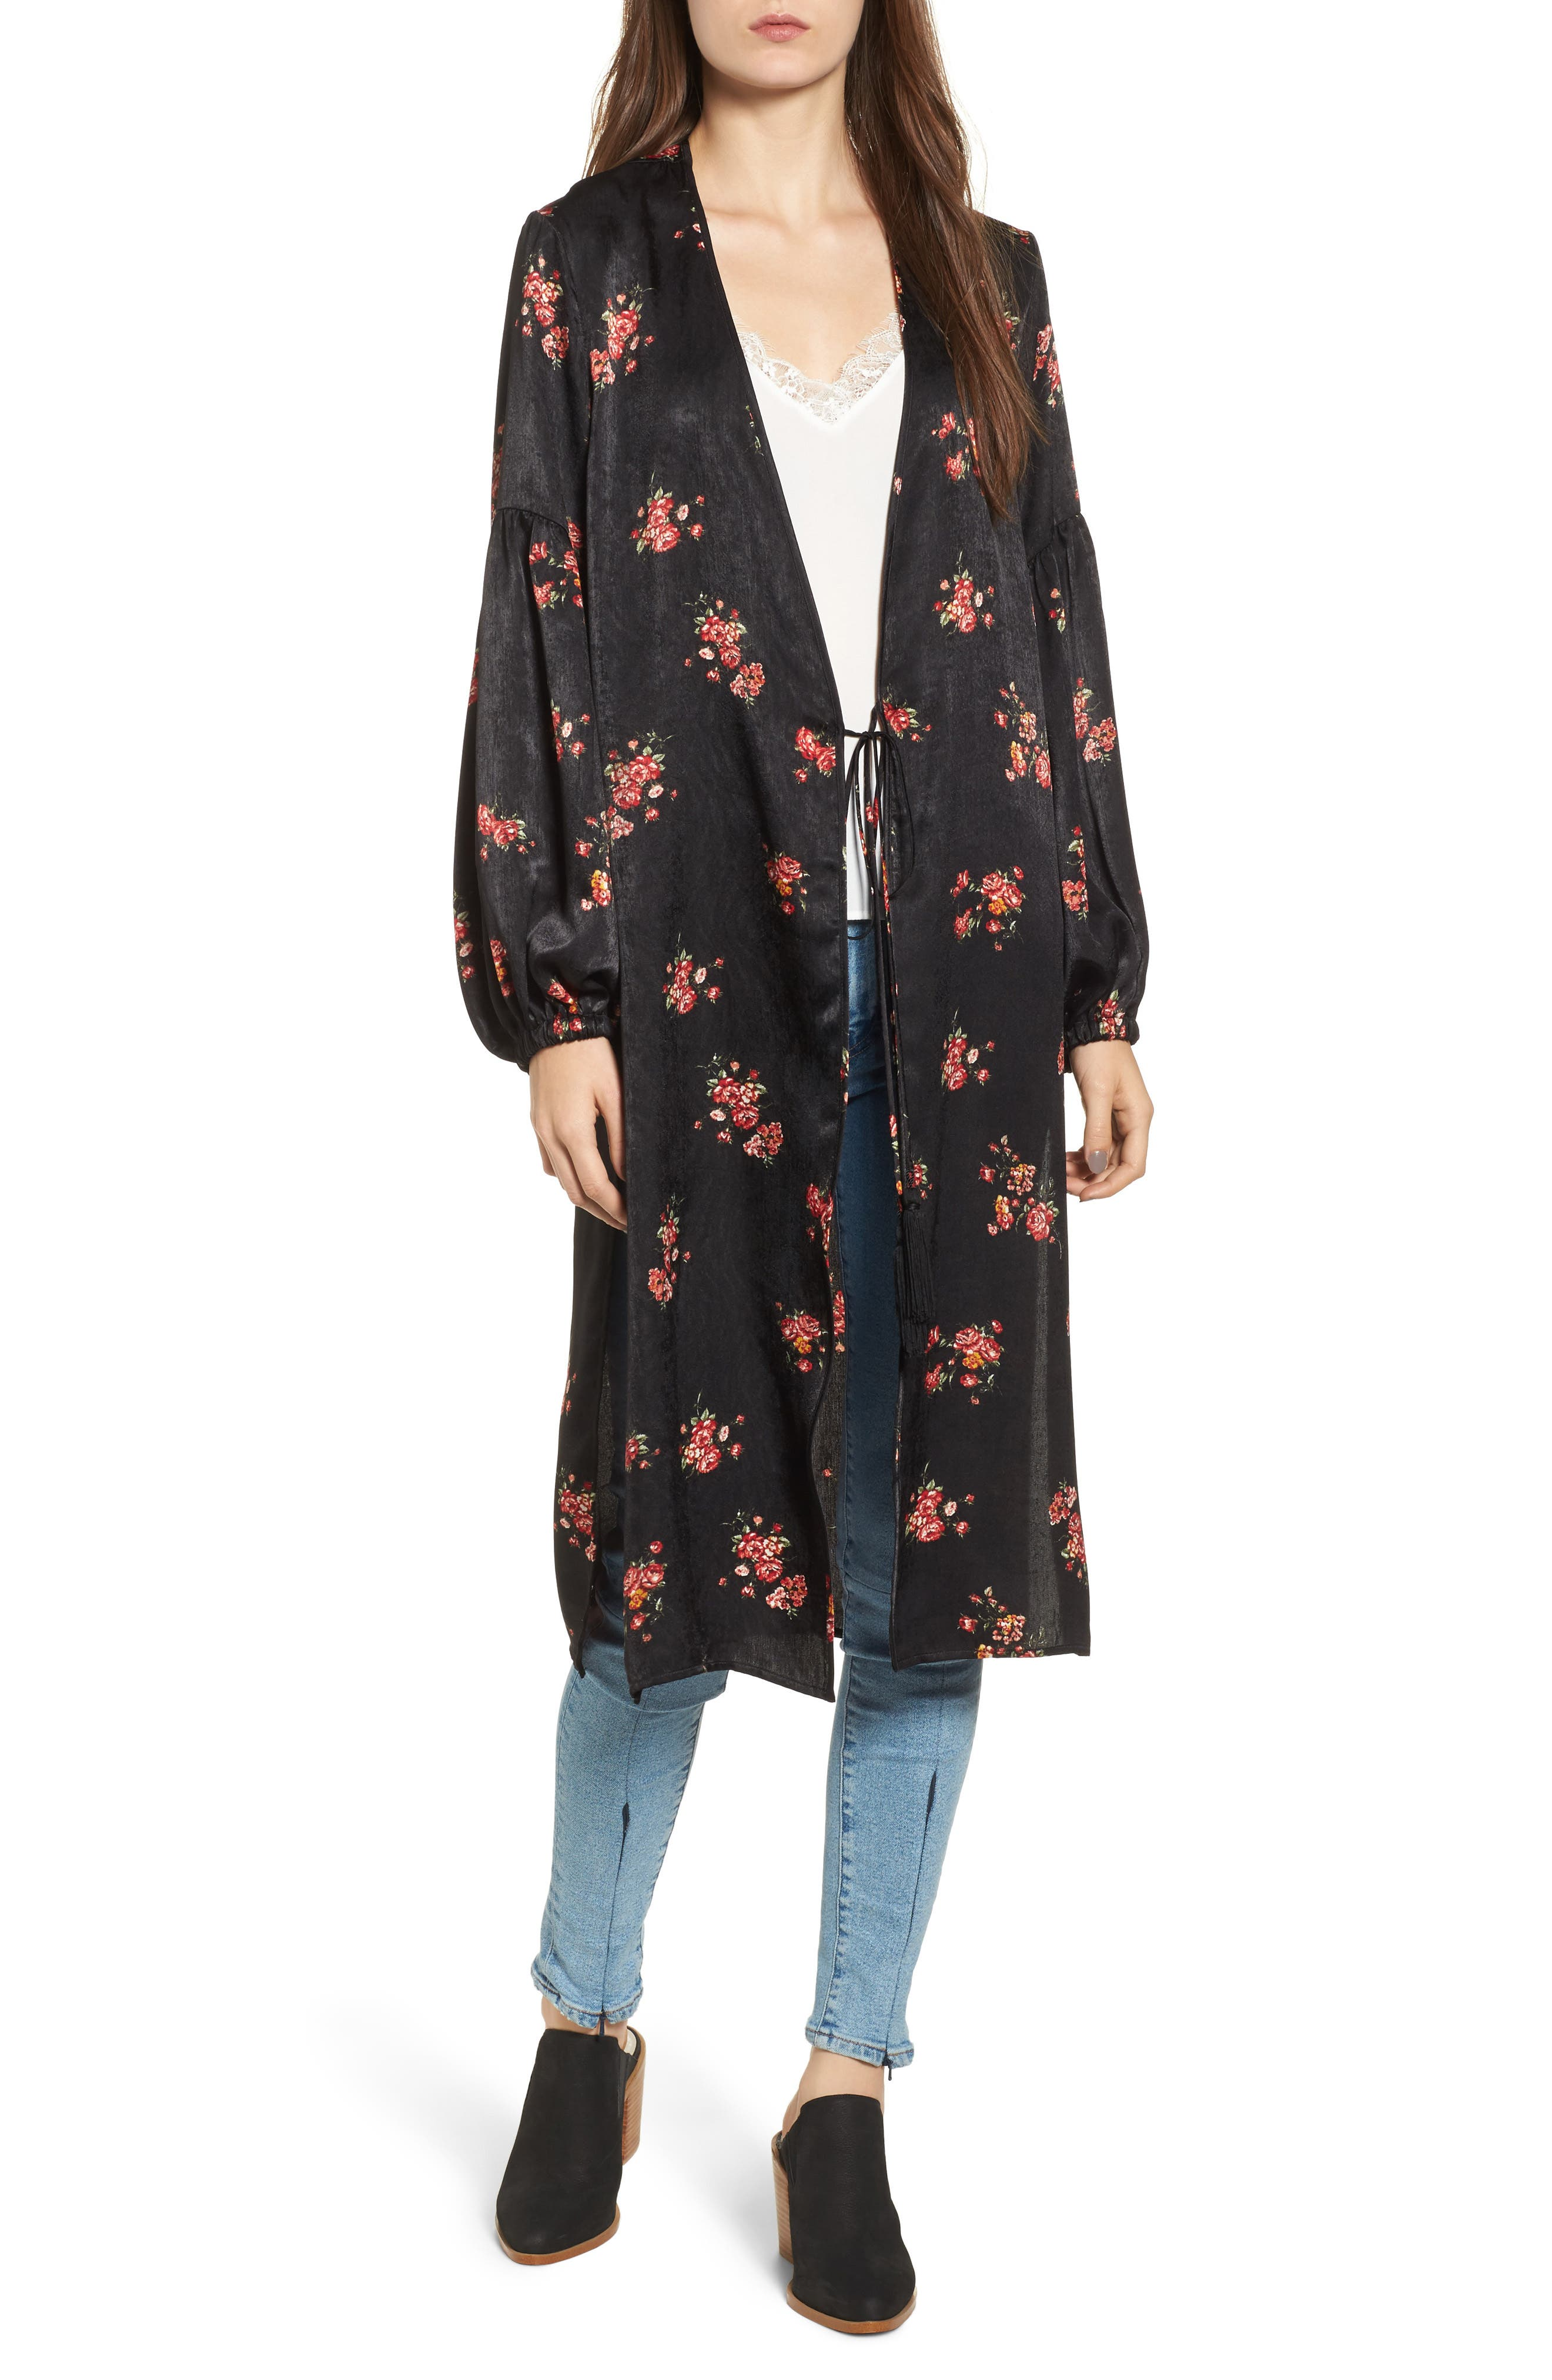 Alternate Image 1 Selected - Tie Front Floral Print Duster